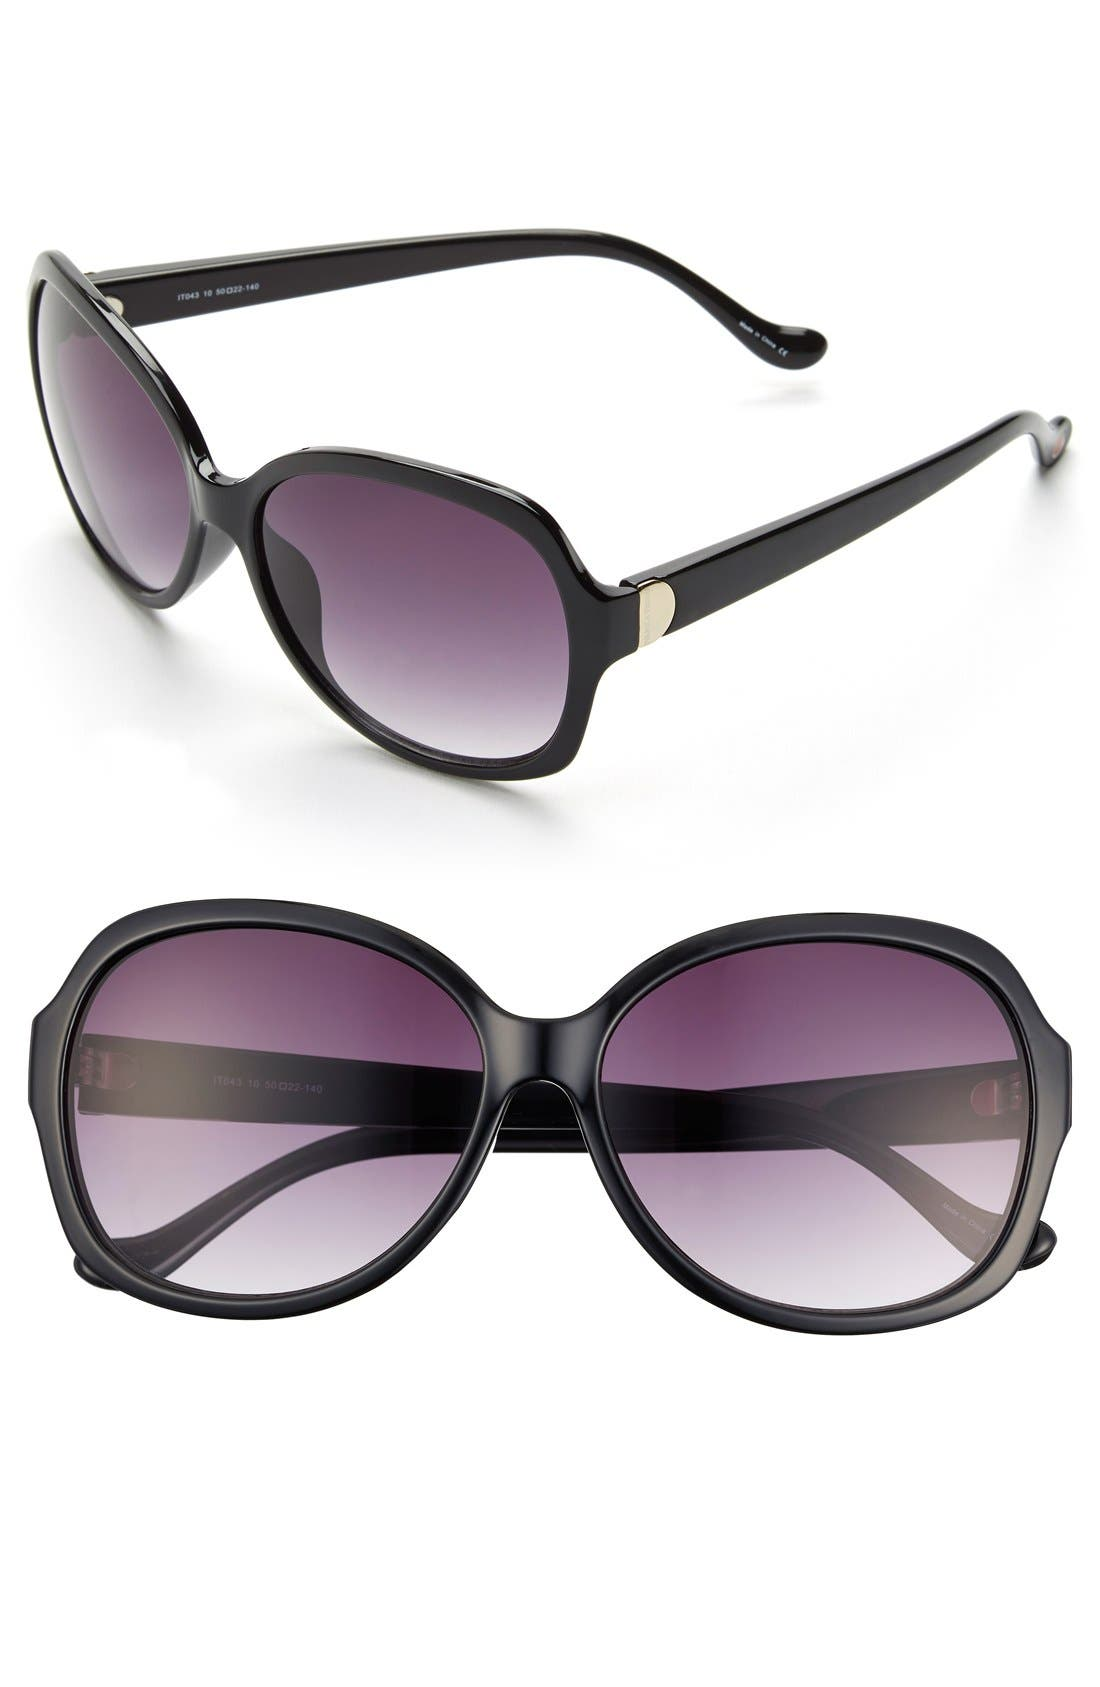 Main Image - Ivanka Trump 59mm Sunglasses